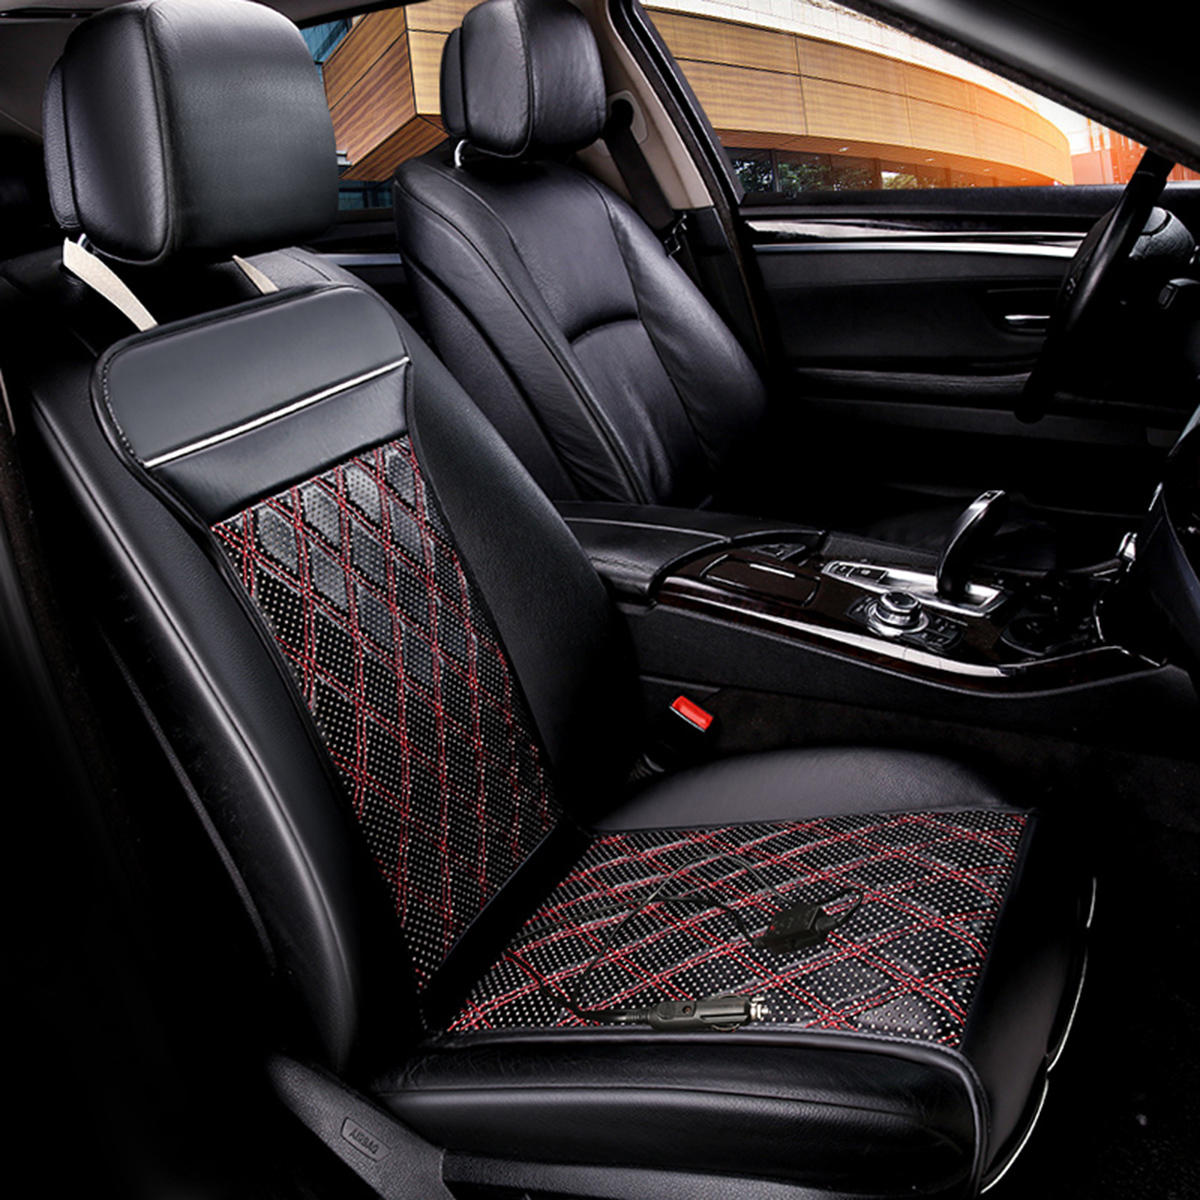 12V Car Heated Seat Cushion Warmer Winter Household Cover Electric Heating Mat Pad